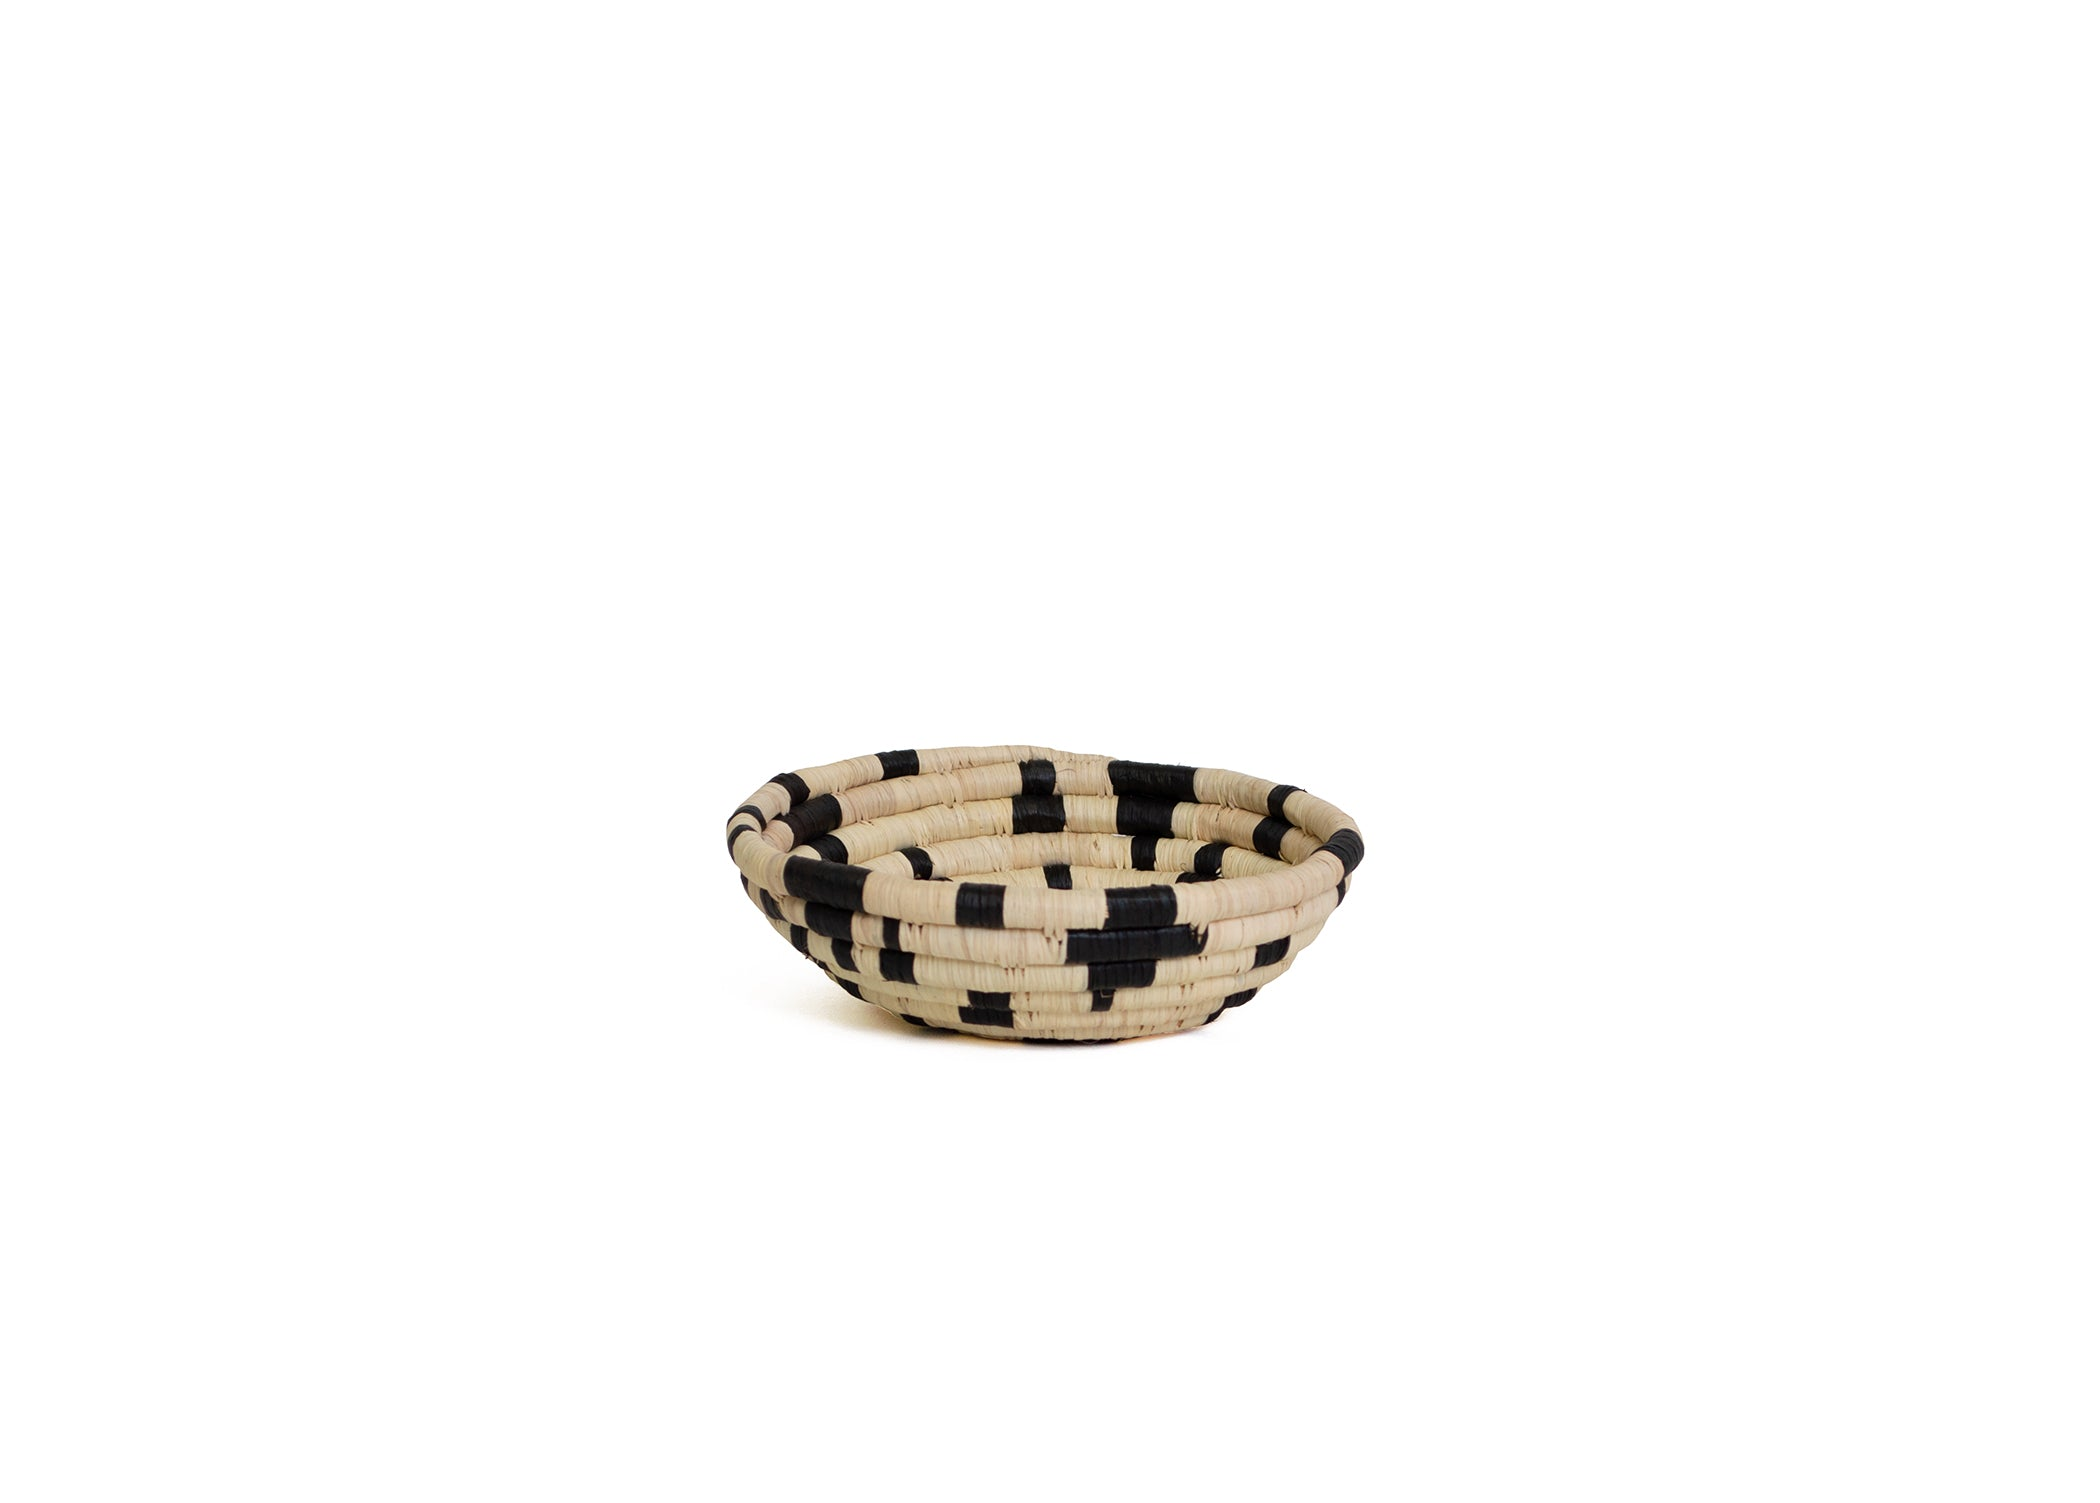 Black + Natural Terrazzo Small Bowl - KAZI - Artisan made high quality home decor and wall art